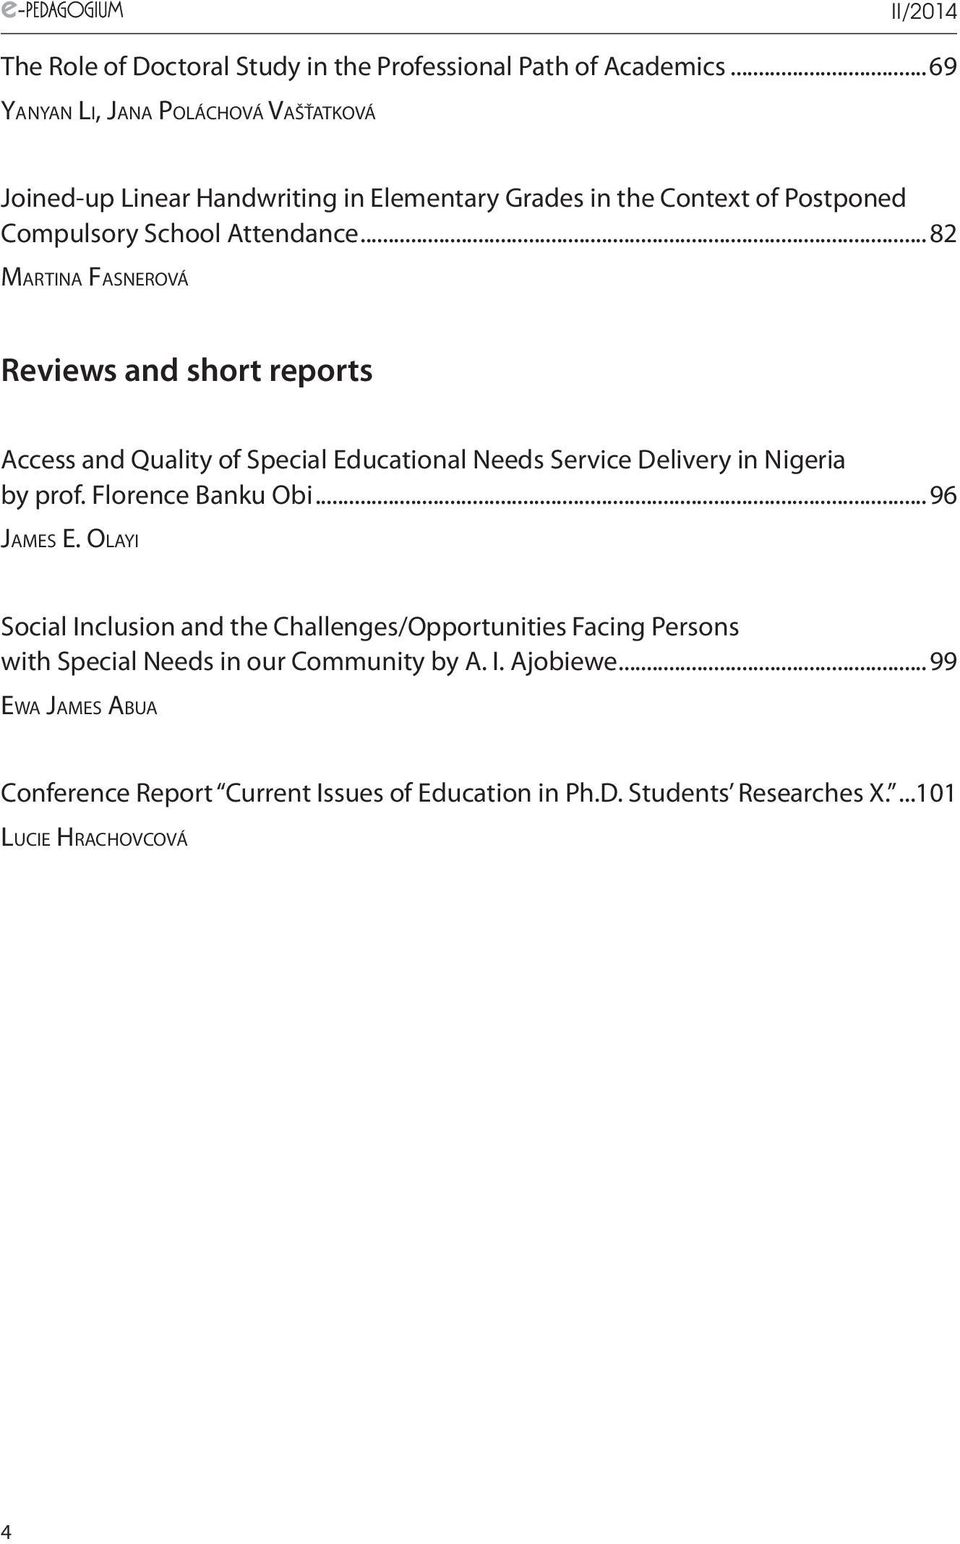 ..82 MARTINA FASNEROVÁ Reviews and short reports Access and Quality of Special Educational Needs Service Delivery in Nigeria by prof. Florence Banku Obi.